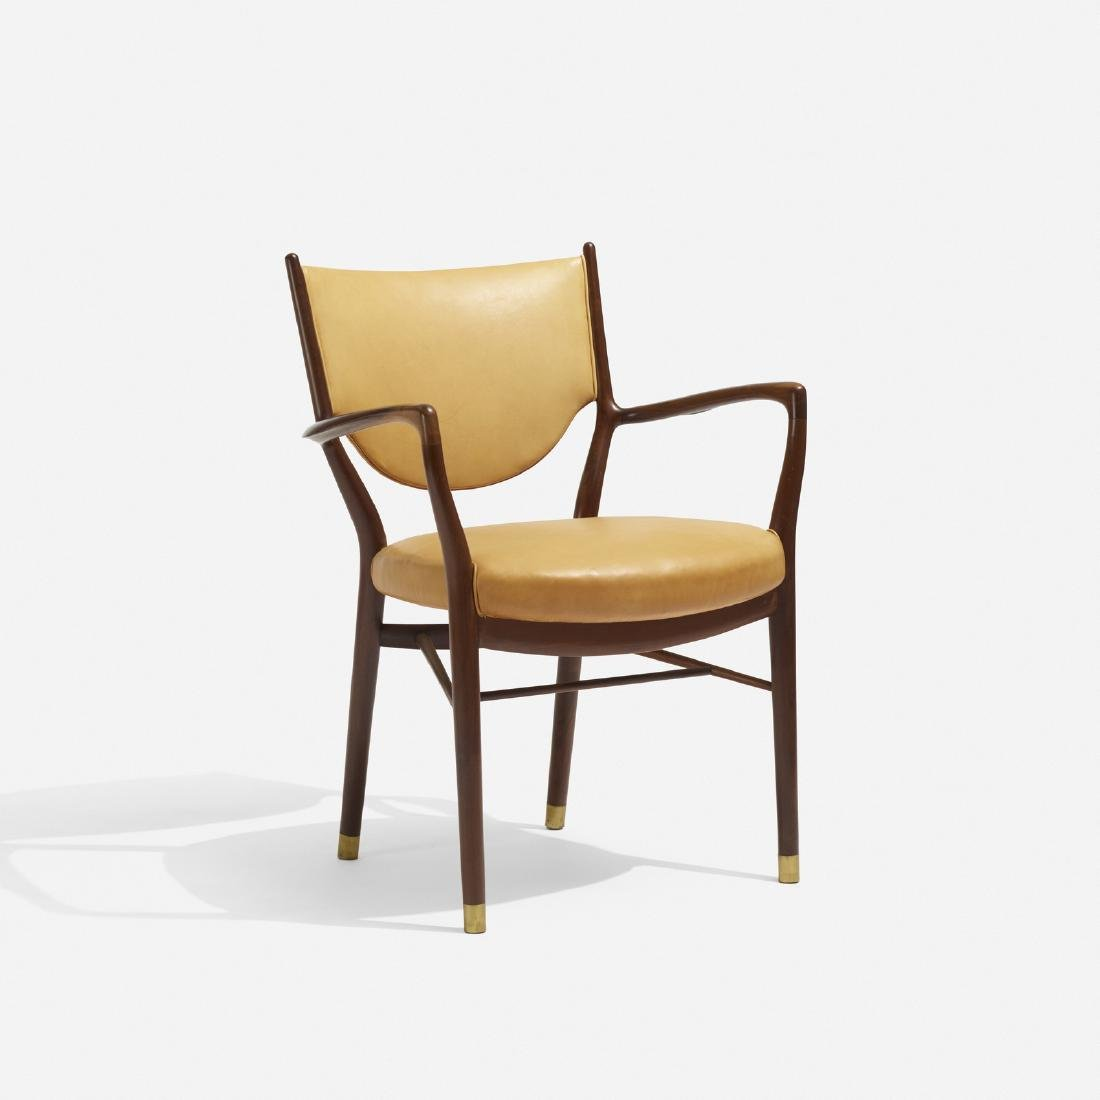 Finn Juhl, armchair, model NV-46